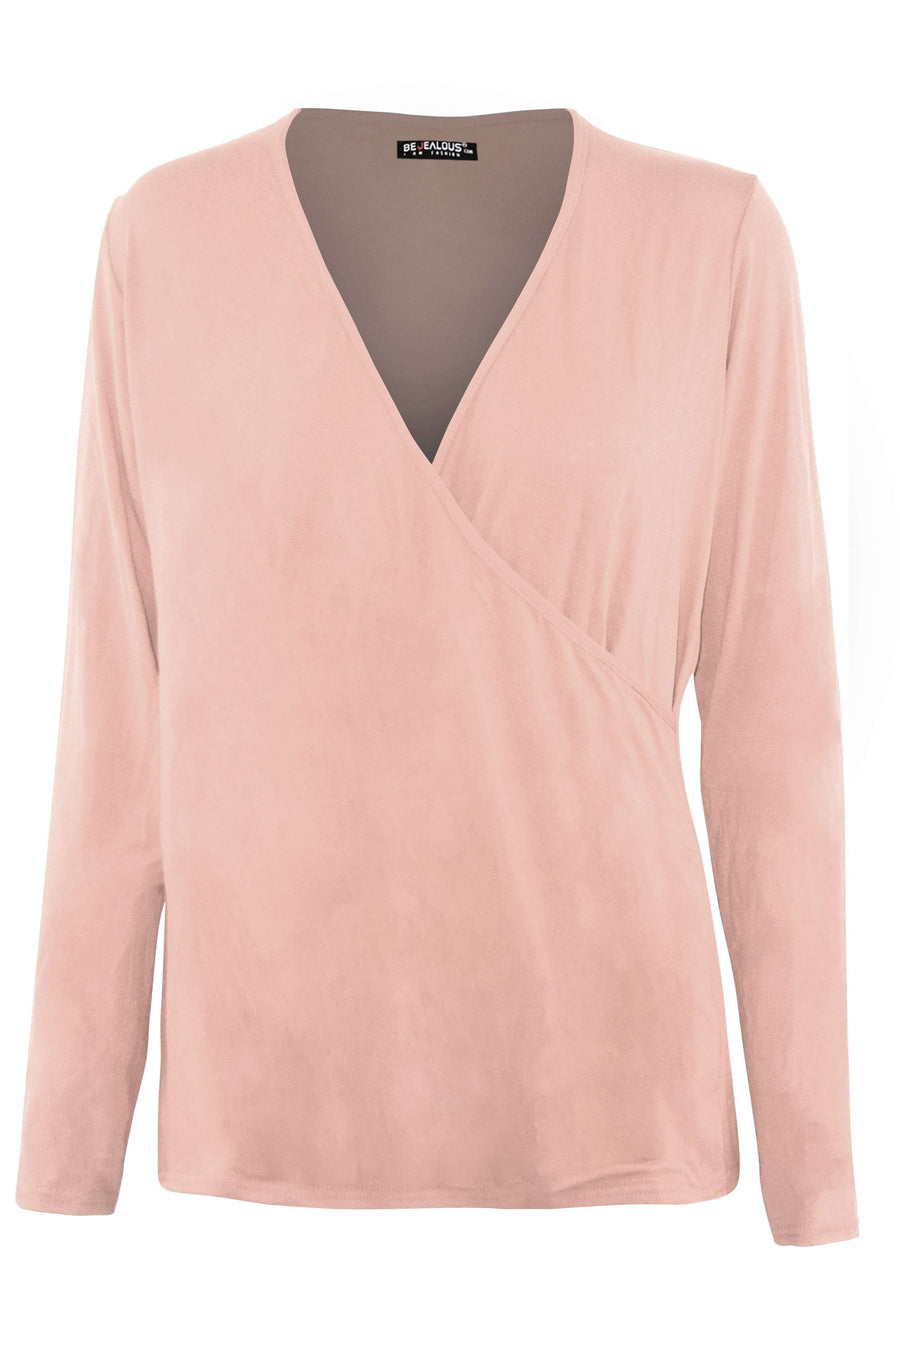 Dannie Long Sleeve Wrap Jersey Top - bejealous-com